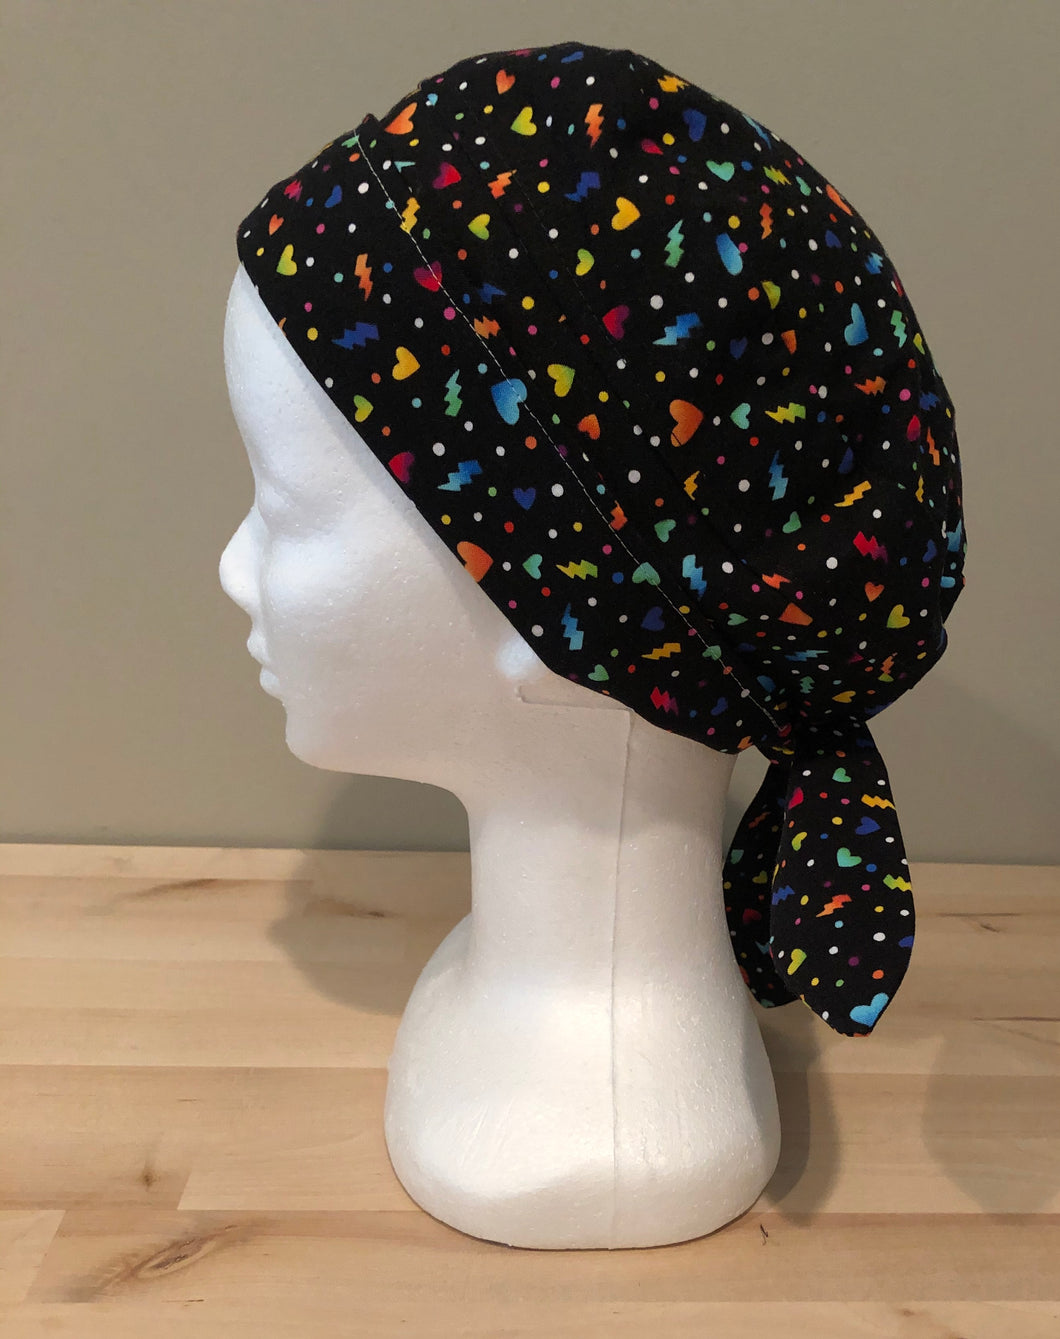 Black with Rainbow Hearts - Scrub Cap for COVID-19 protection